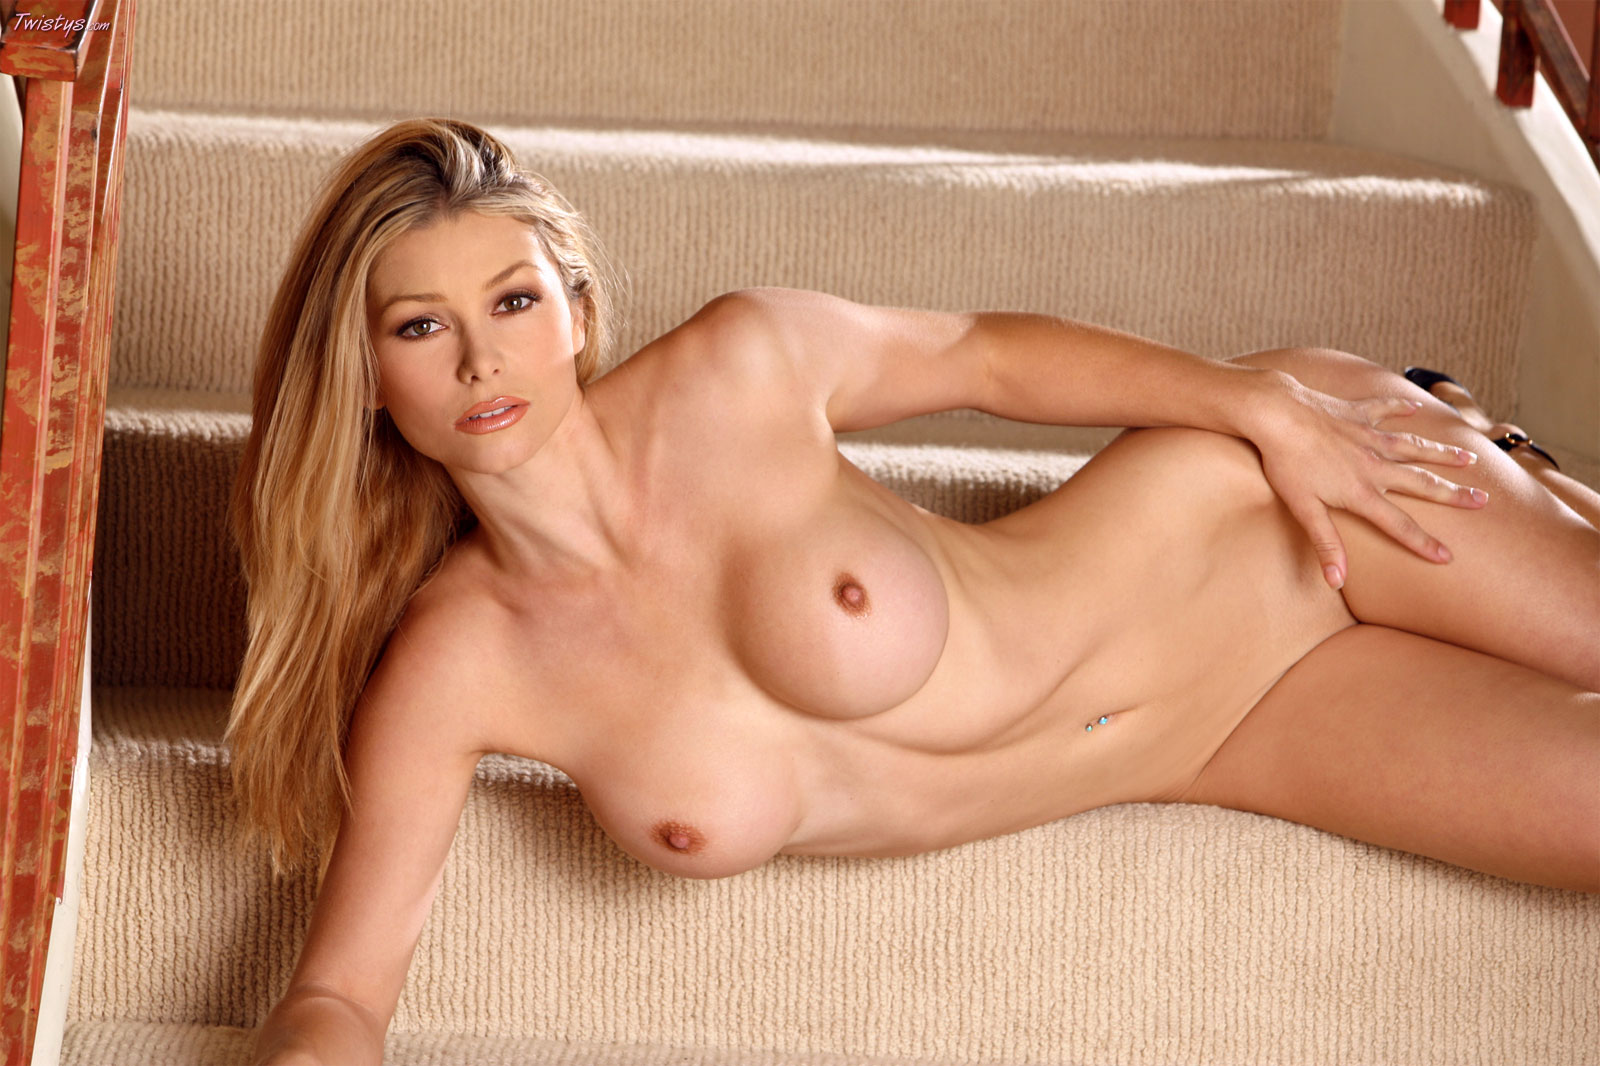 Heather vandeven breasts, bush scene in housewives